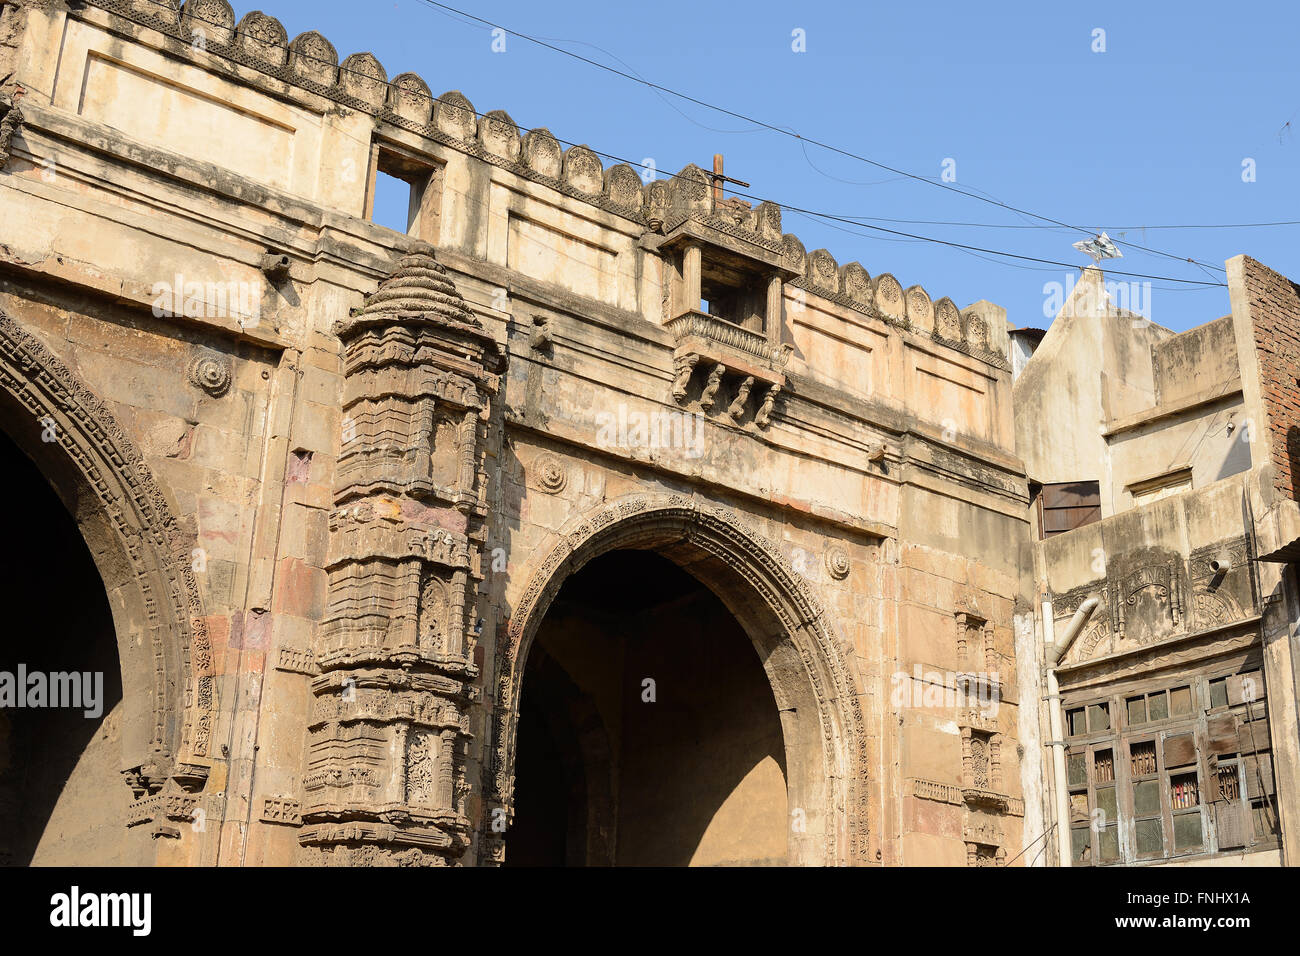 Historic building in Ahmadabad town in the Indian state of Gujarat - Stock Image